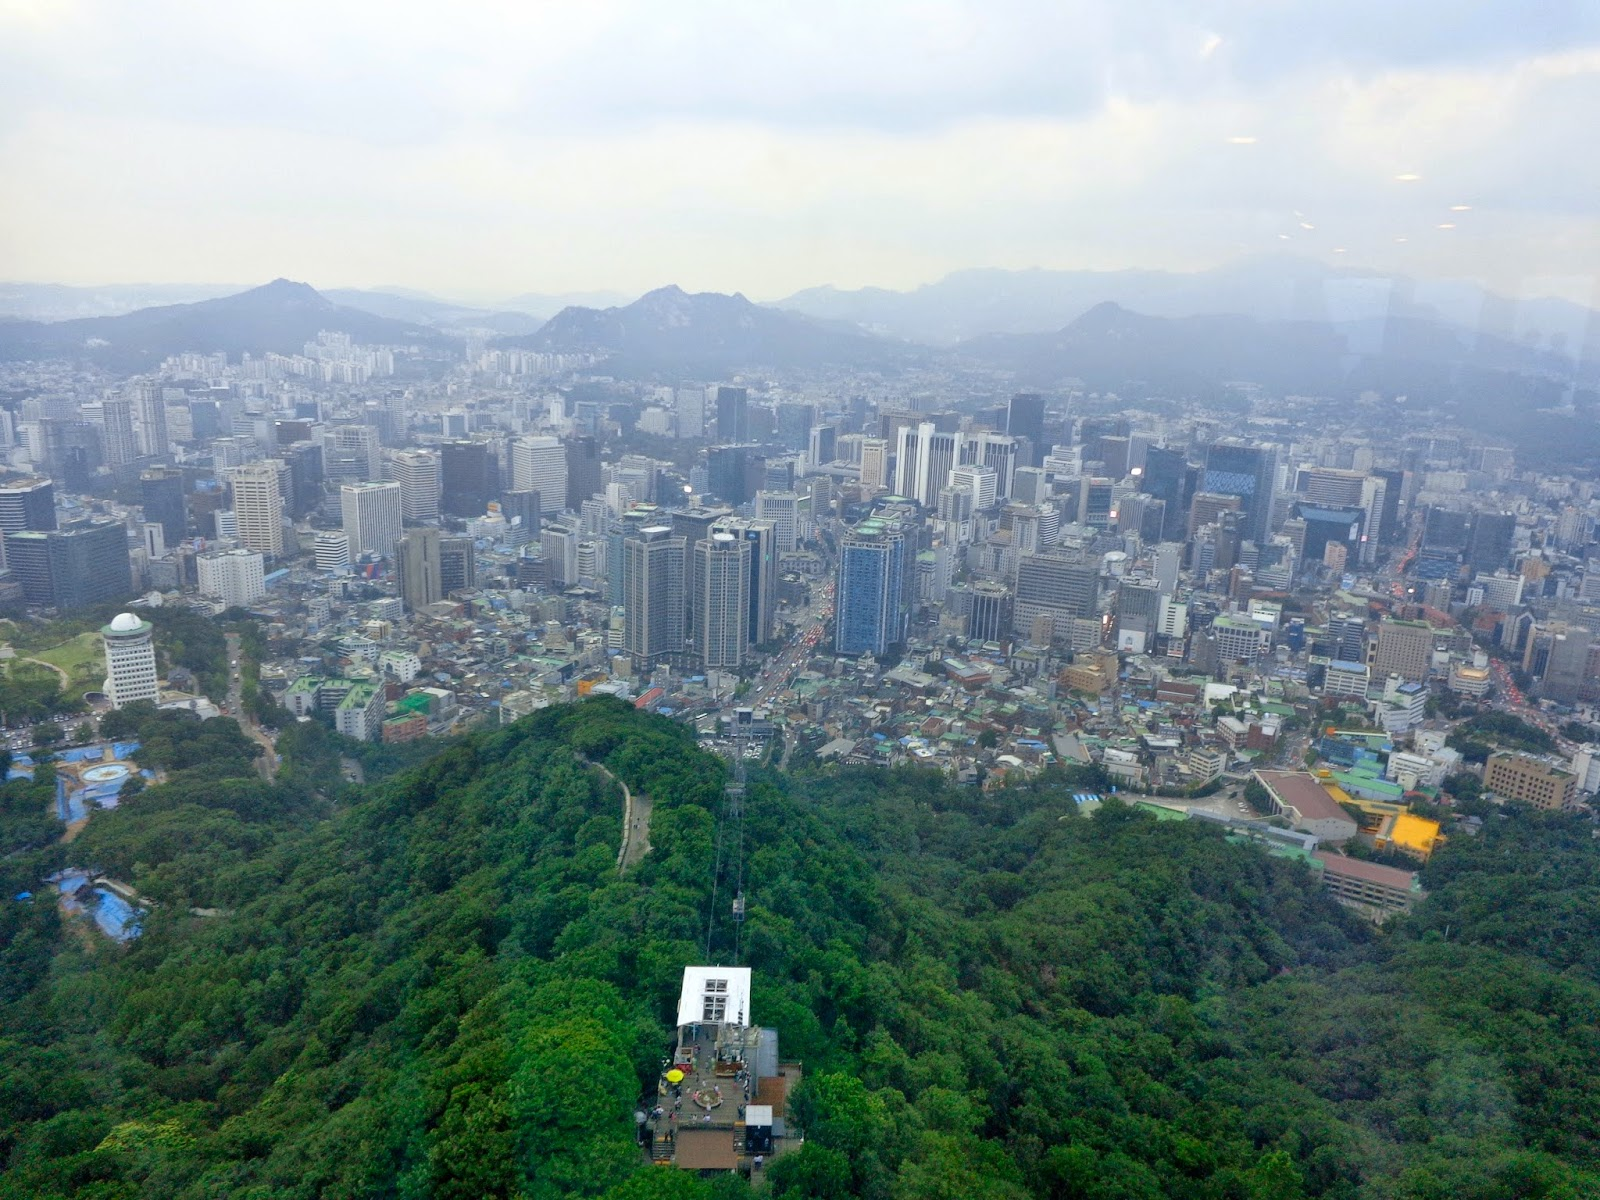 View from N Seoul Tower (Namsan Tower)